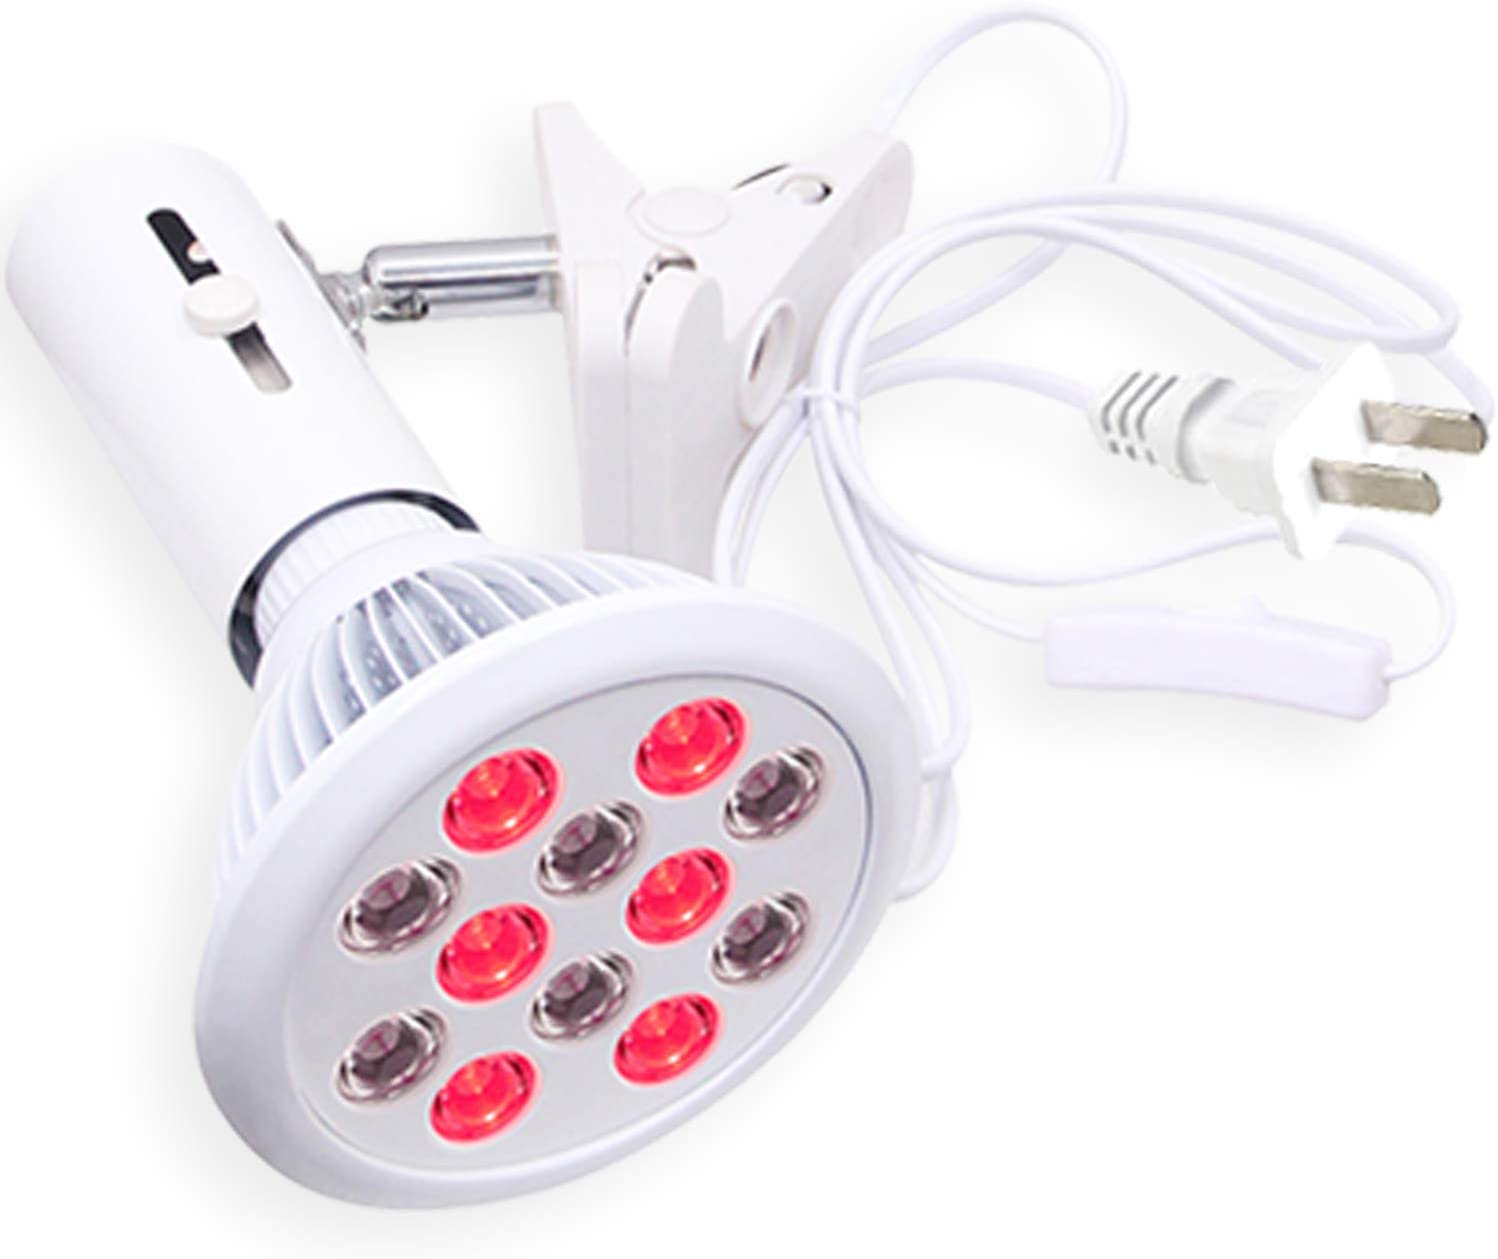 Stardust – Red Light Therapy Bulb Near Infrared Device with Adjustable Socket Clamp Hands-Free 660nm and 850nm LED